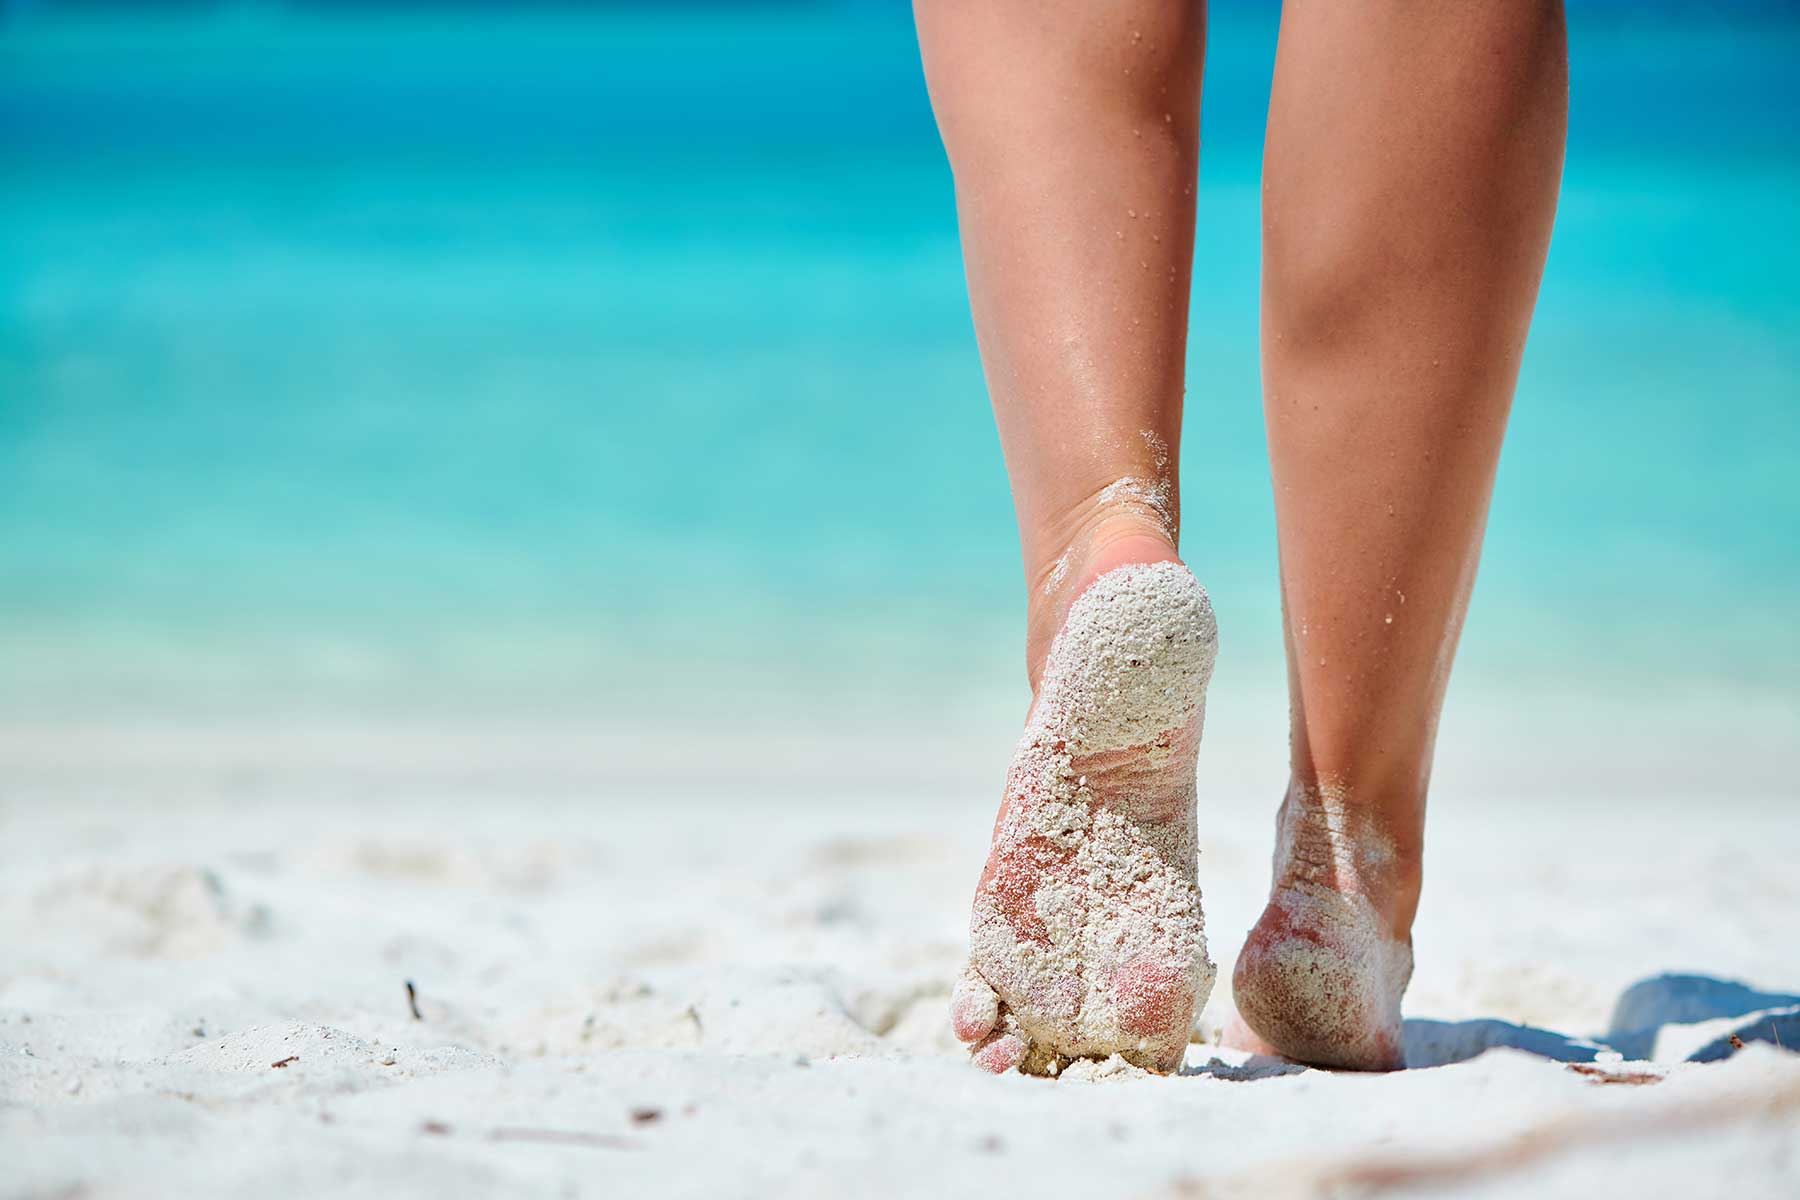 Podiatry & Chiropody Foot Clinic in Farnham Surrey